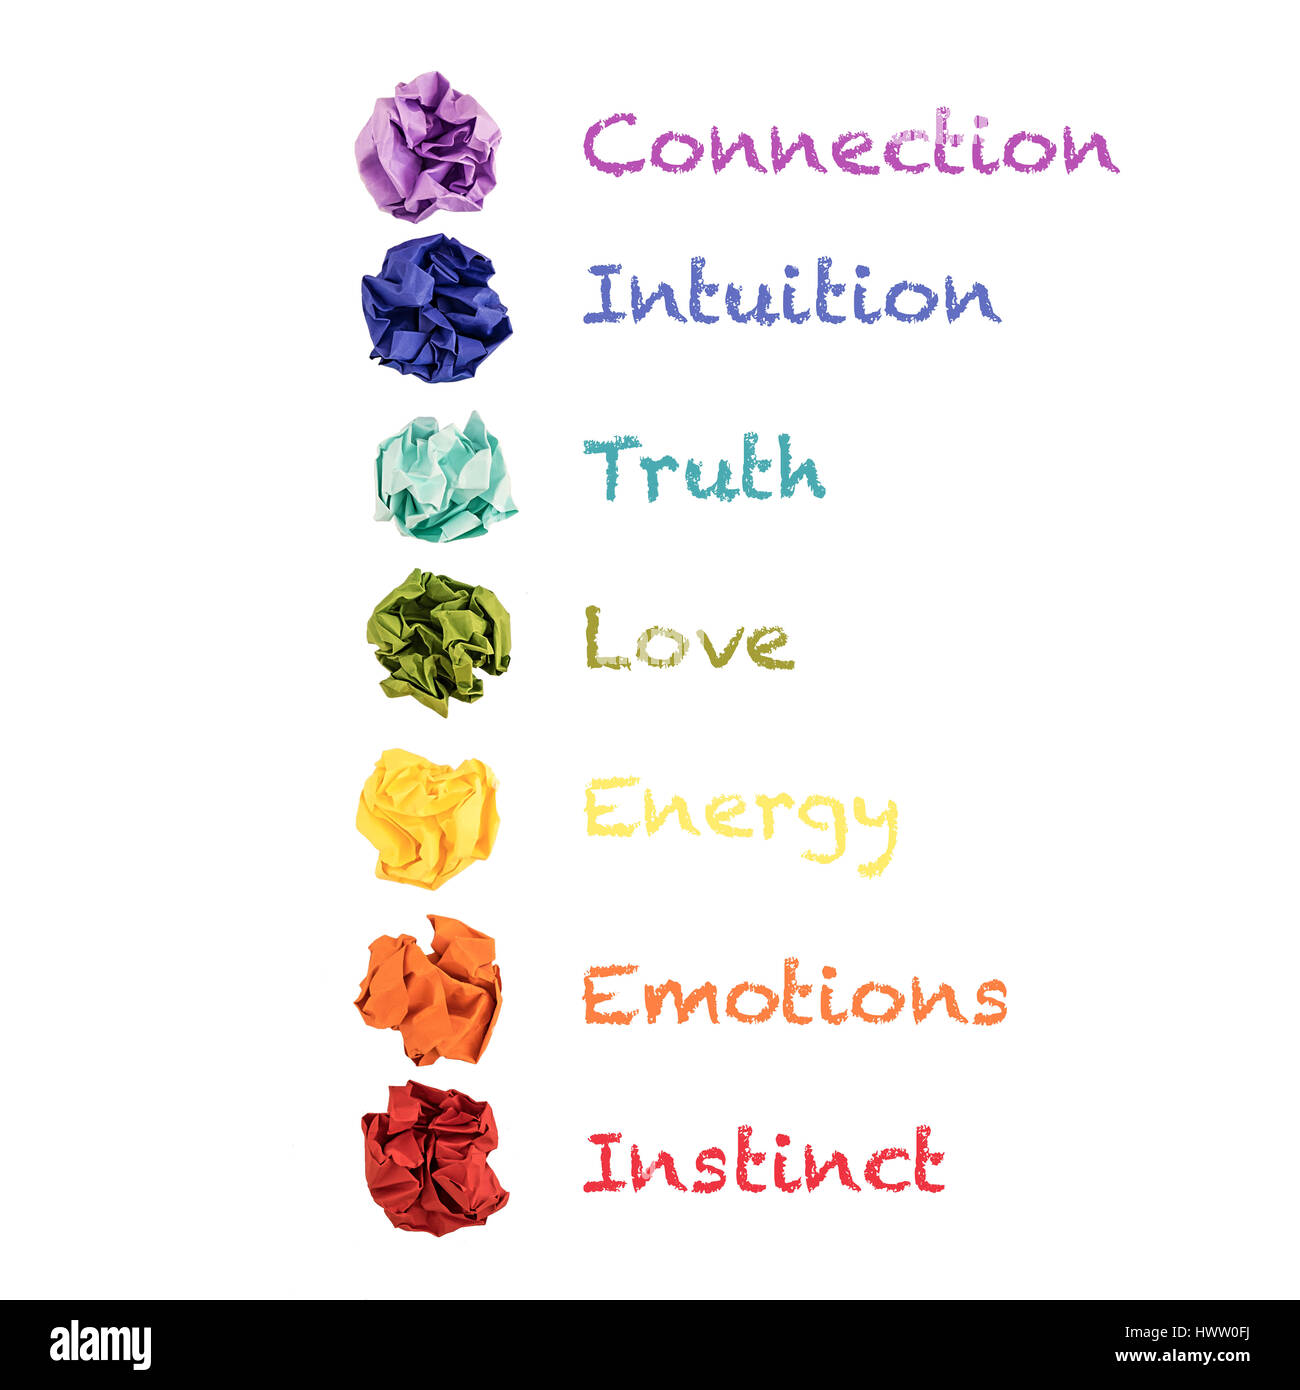 Colored Chakras Stock Photos & Colored Chakras Stock Images - Alamy